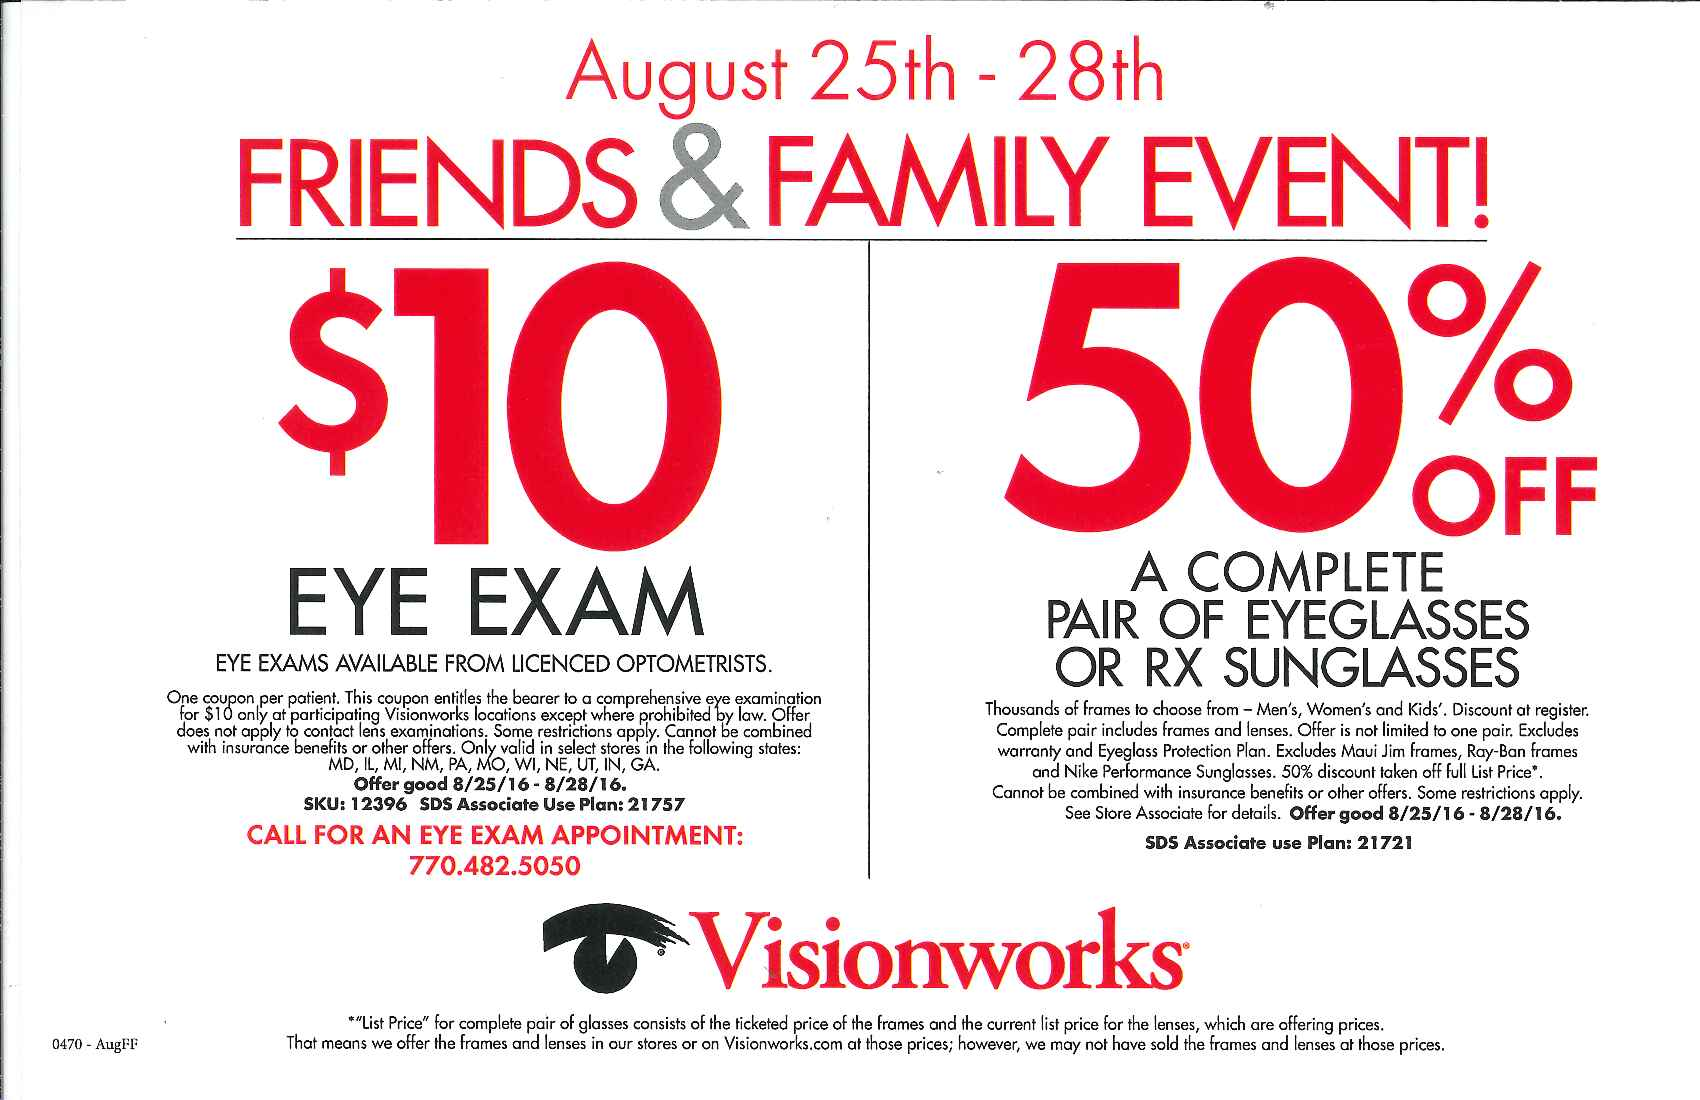 mall at stonecrest on twitter visionworks shopstonecrest friends family event august 25 28 httpstcoc6ohuqojqd